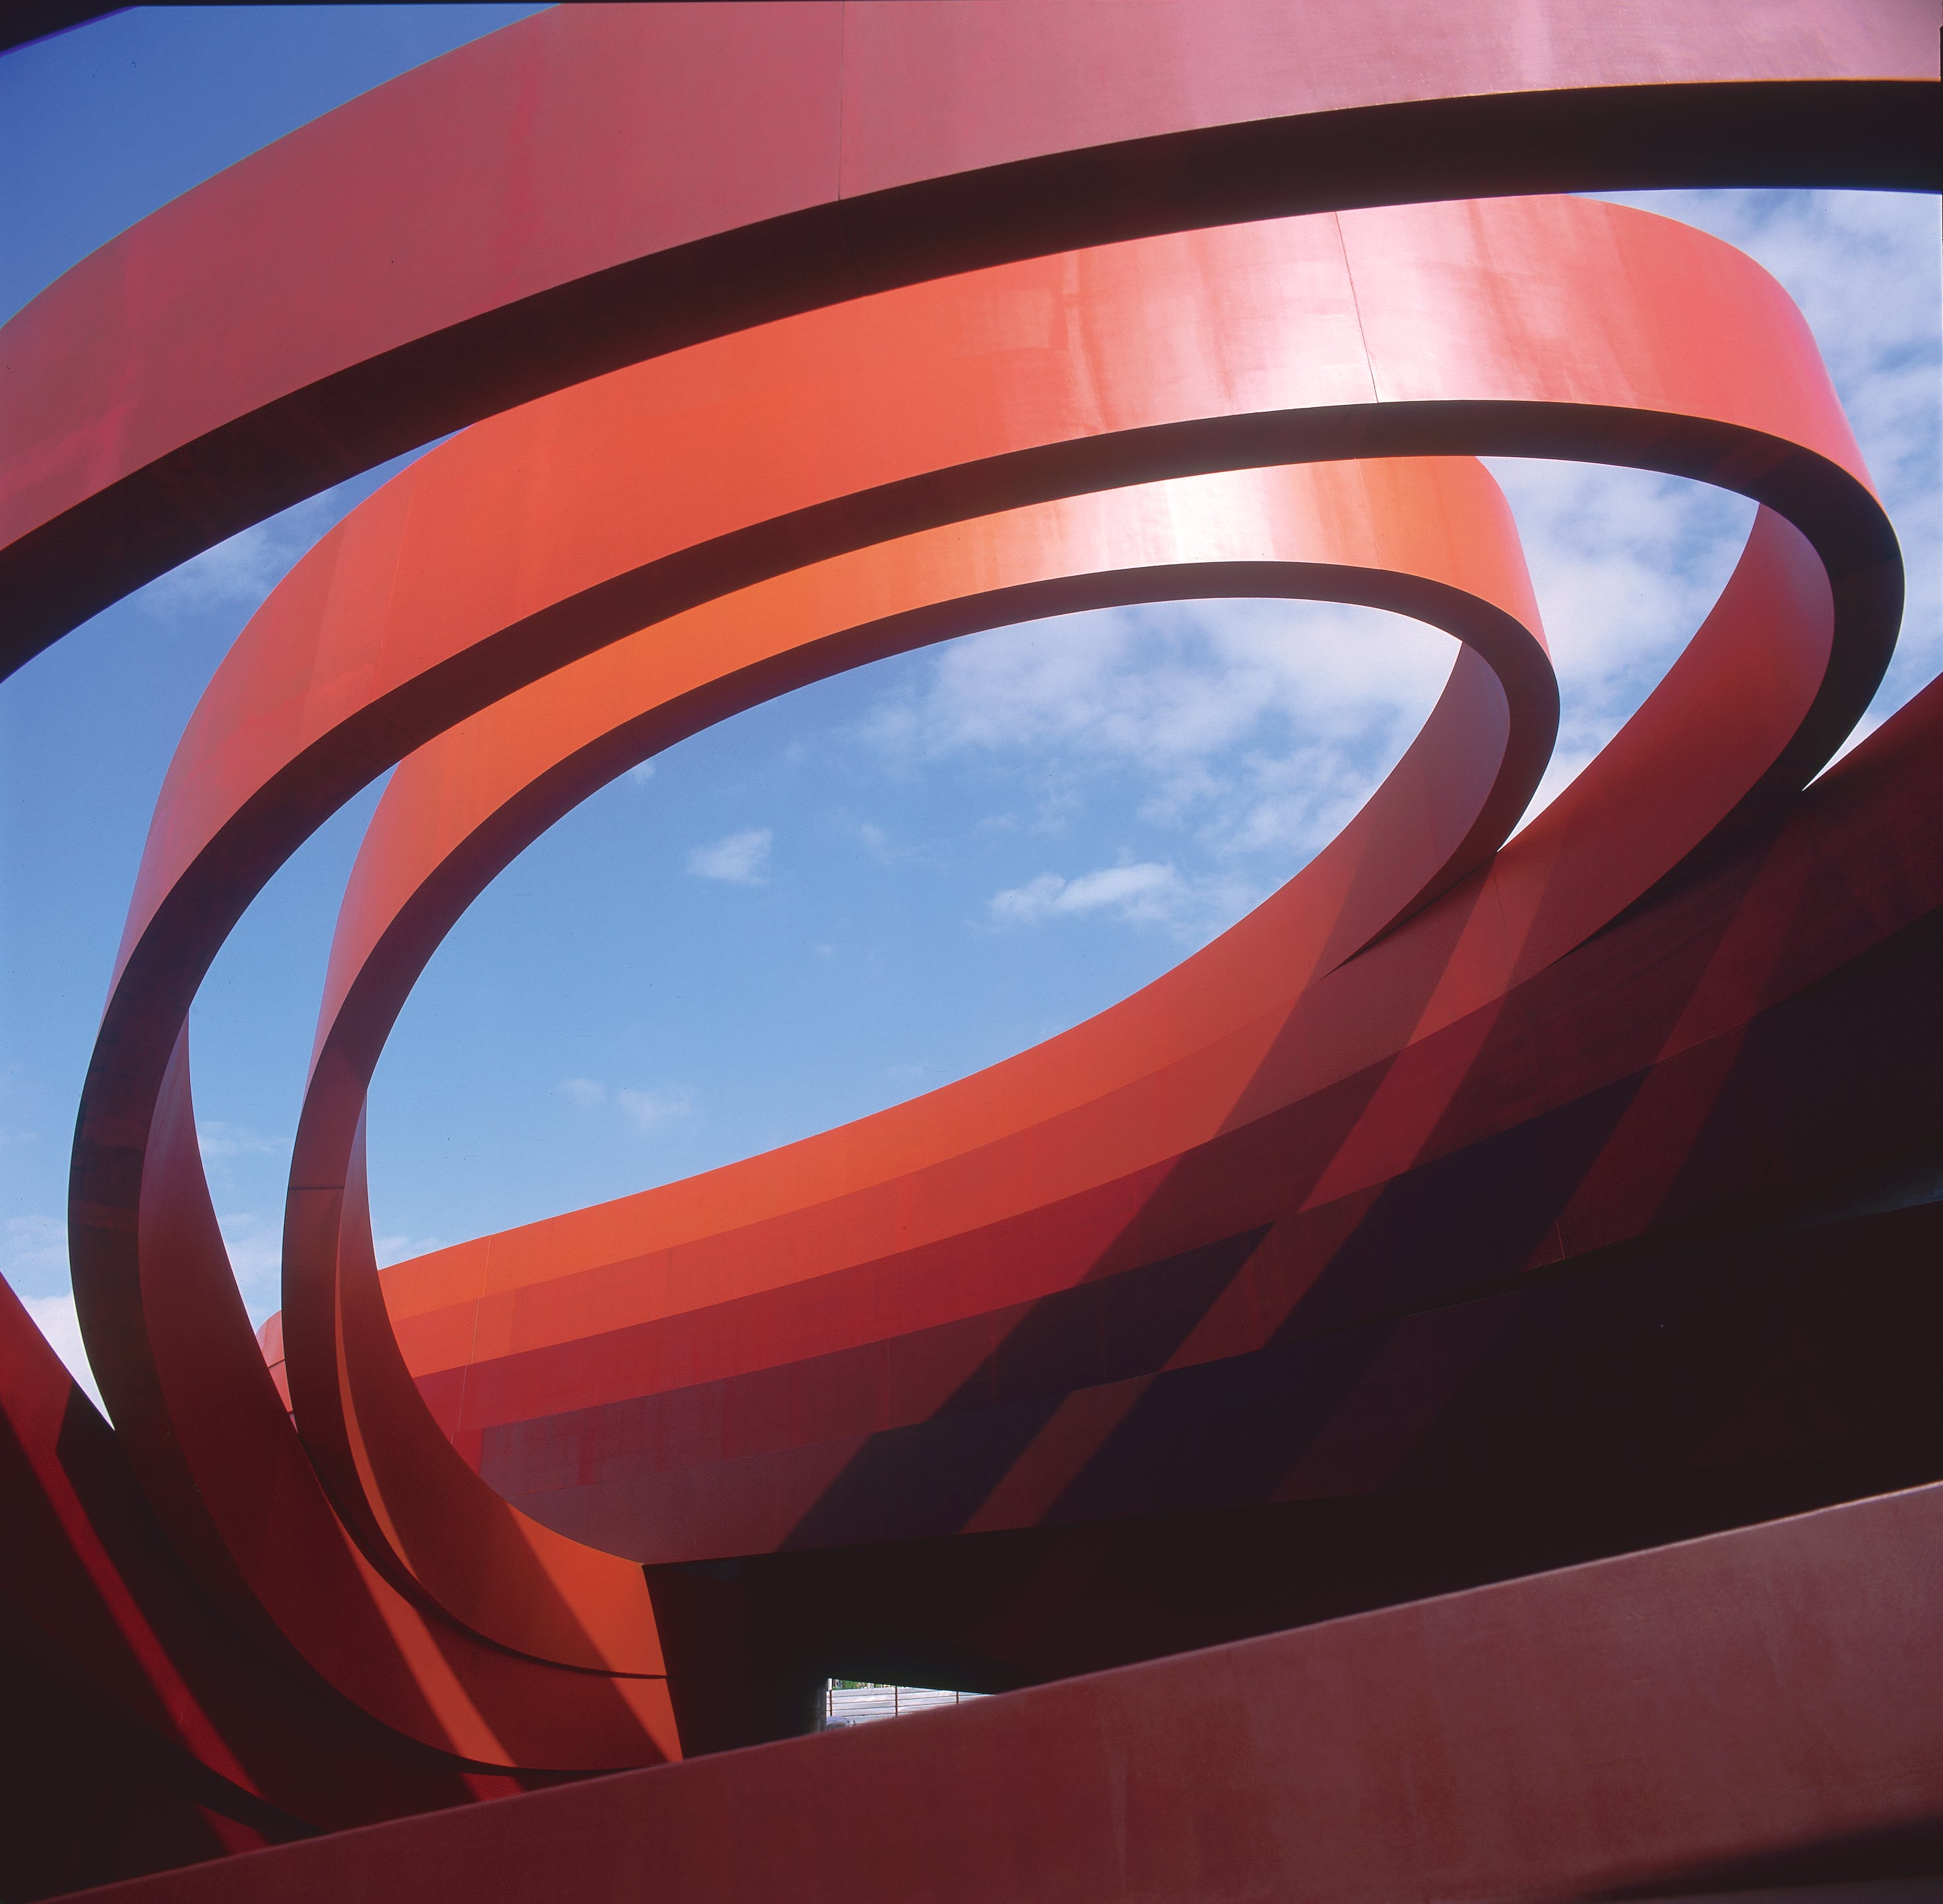 Design Museum Holon, designed by Ron Arad and completed in 2010